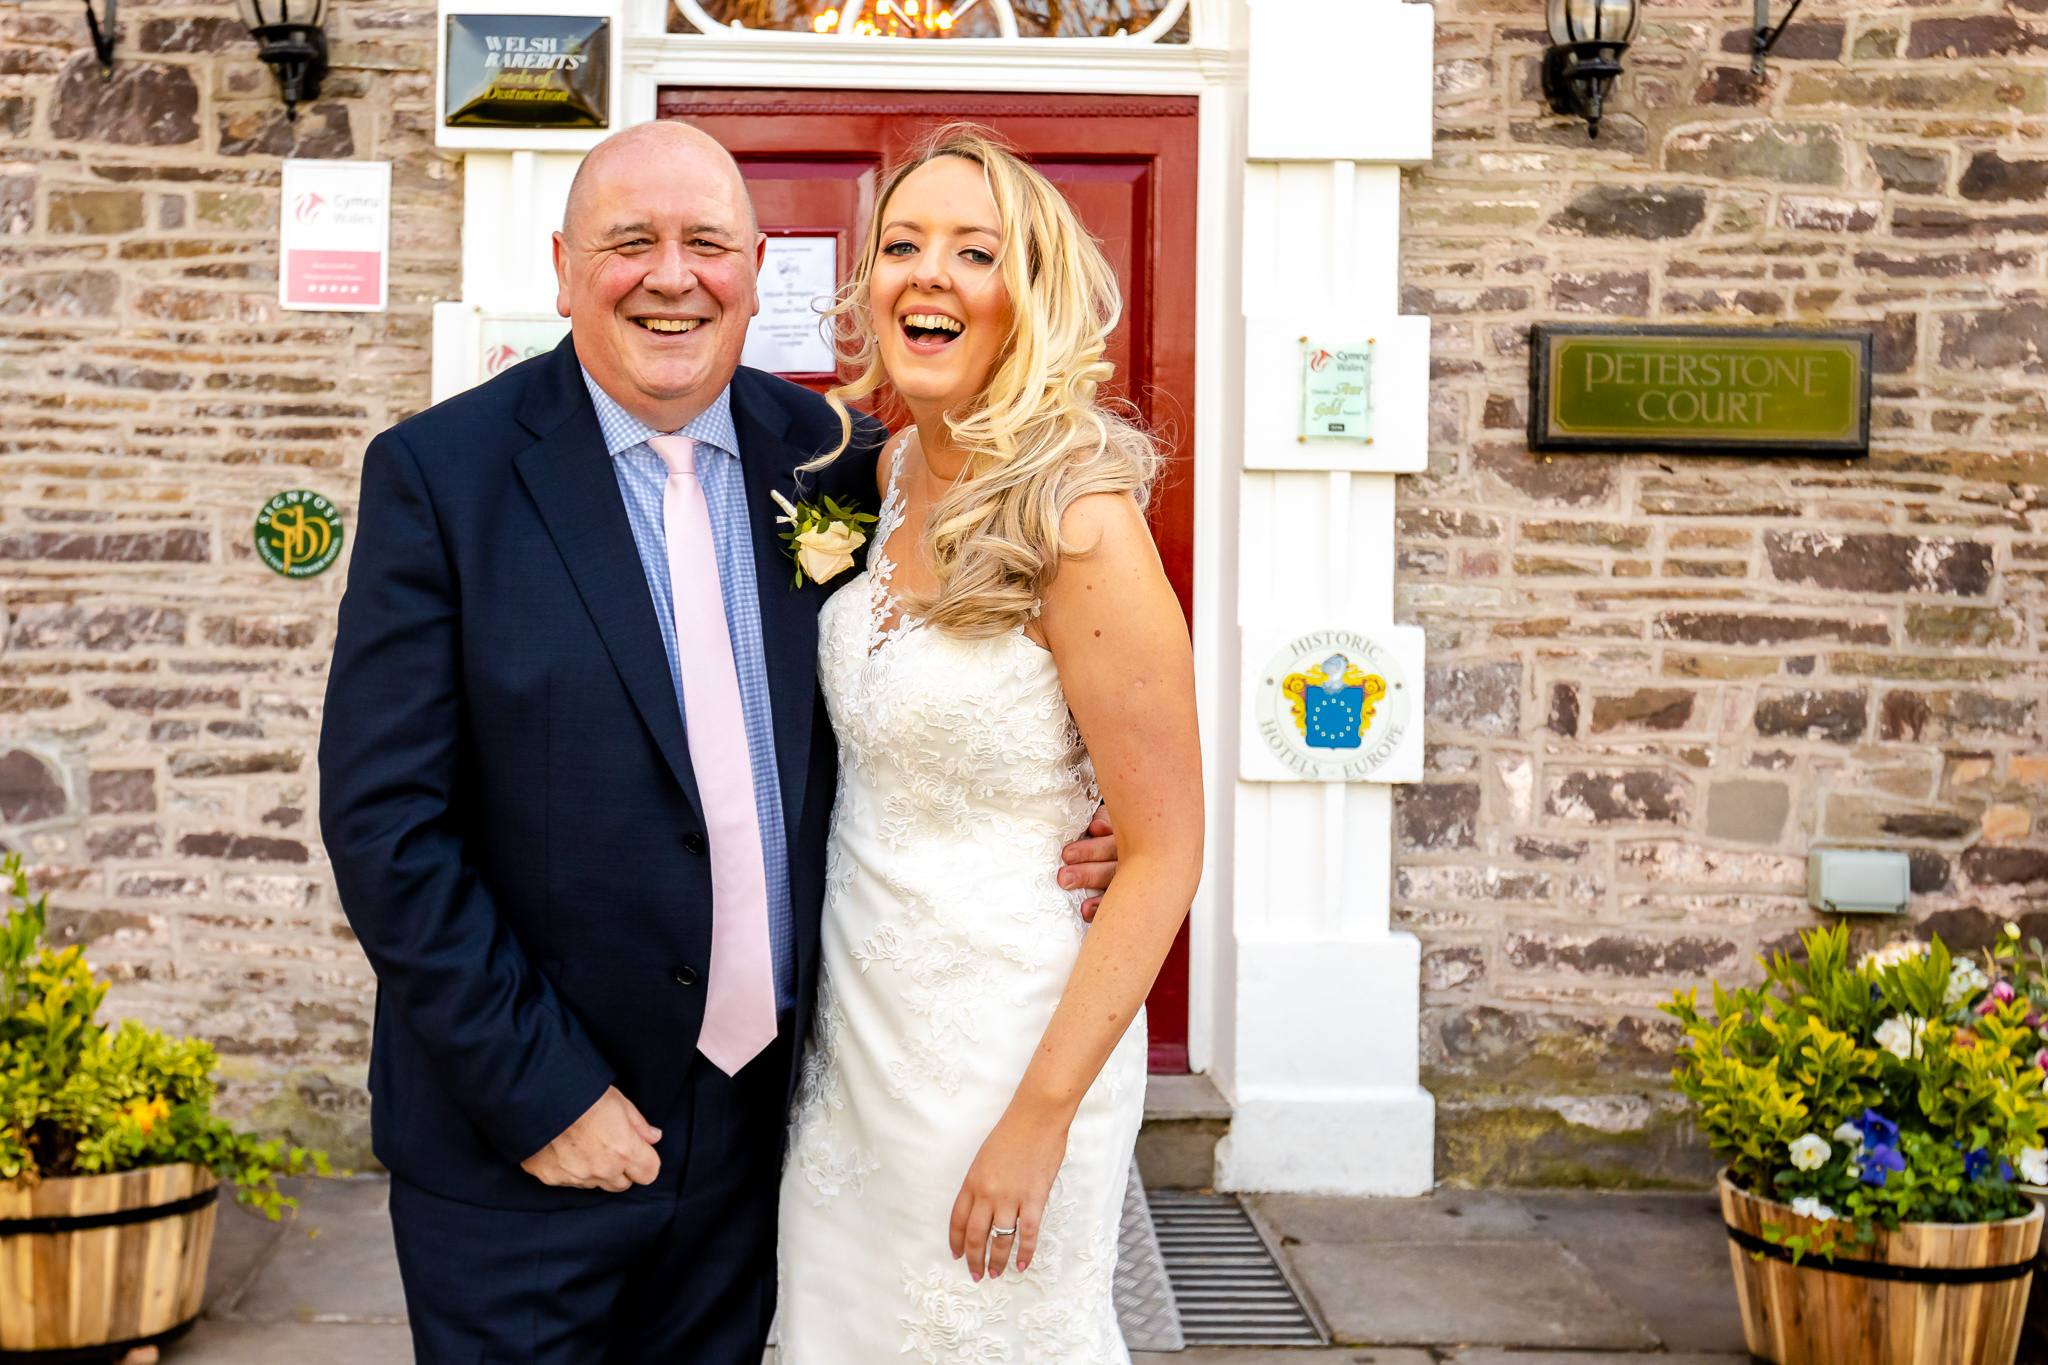 Bride and dad - Peterstone Court wedding